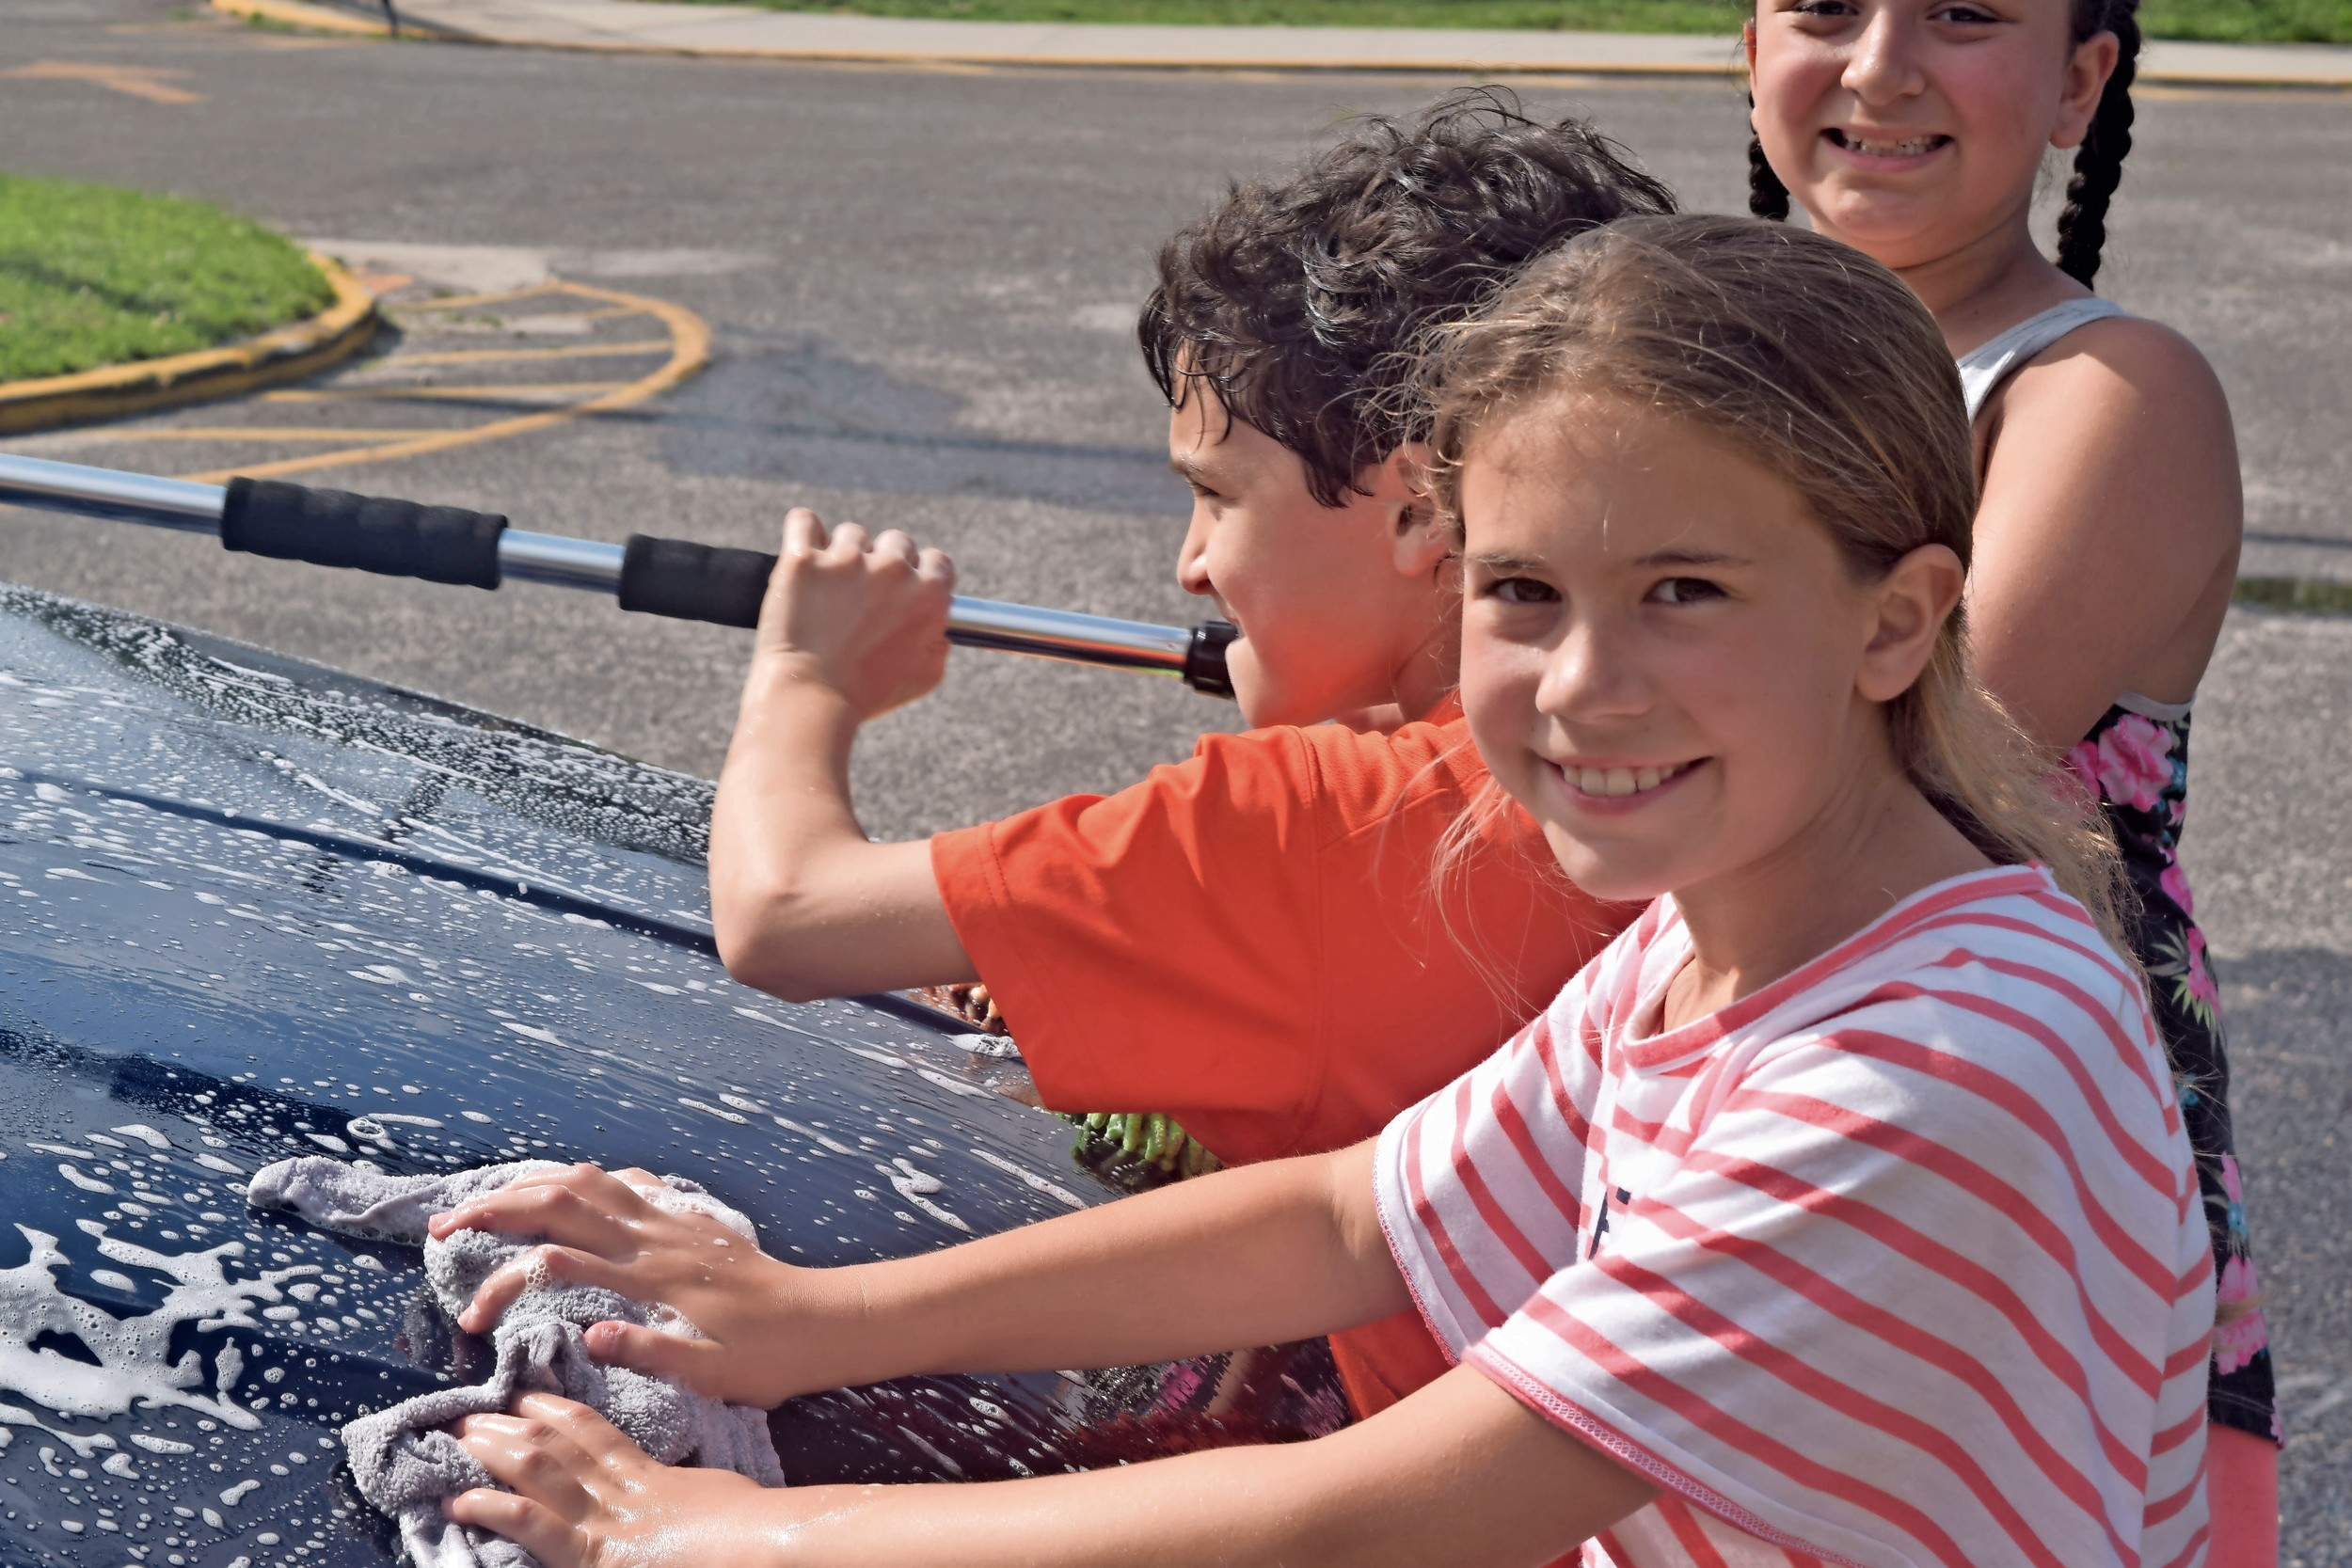 Haley Spinoso, a 10-year-old Wantagh resident, soaped up a car.